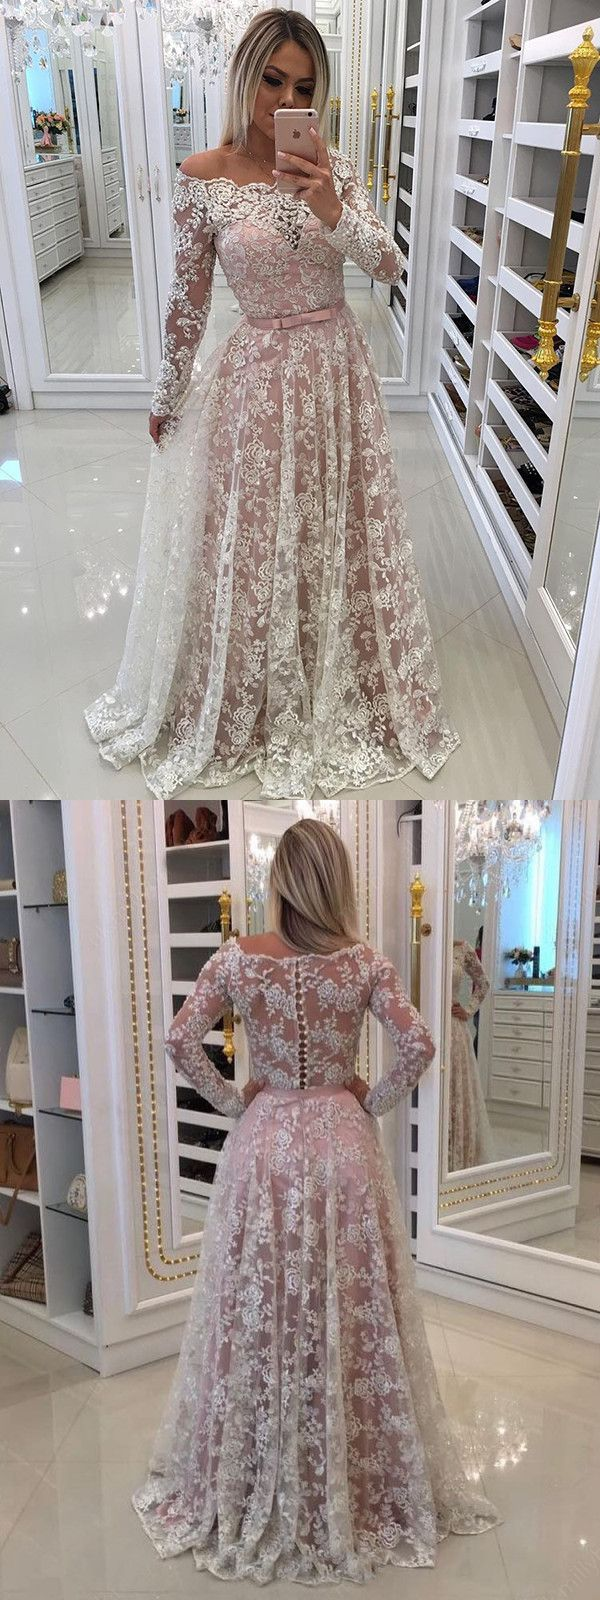 Chic a line wedding dress with sleeves cheap lace long wedding dress